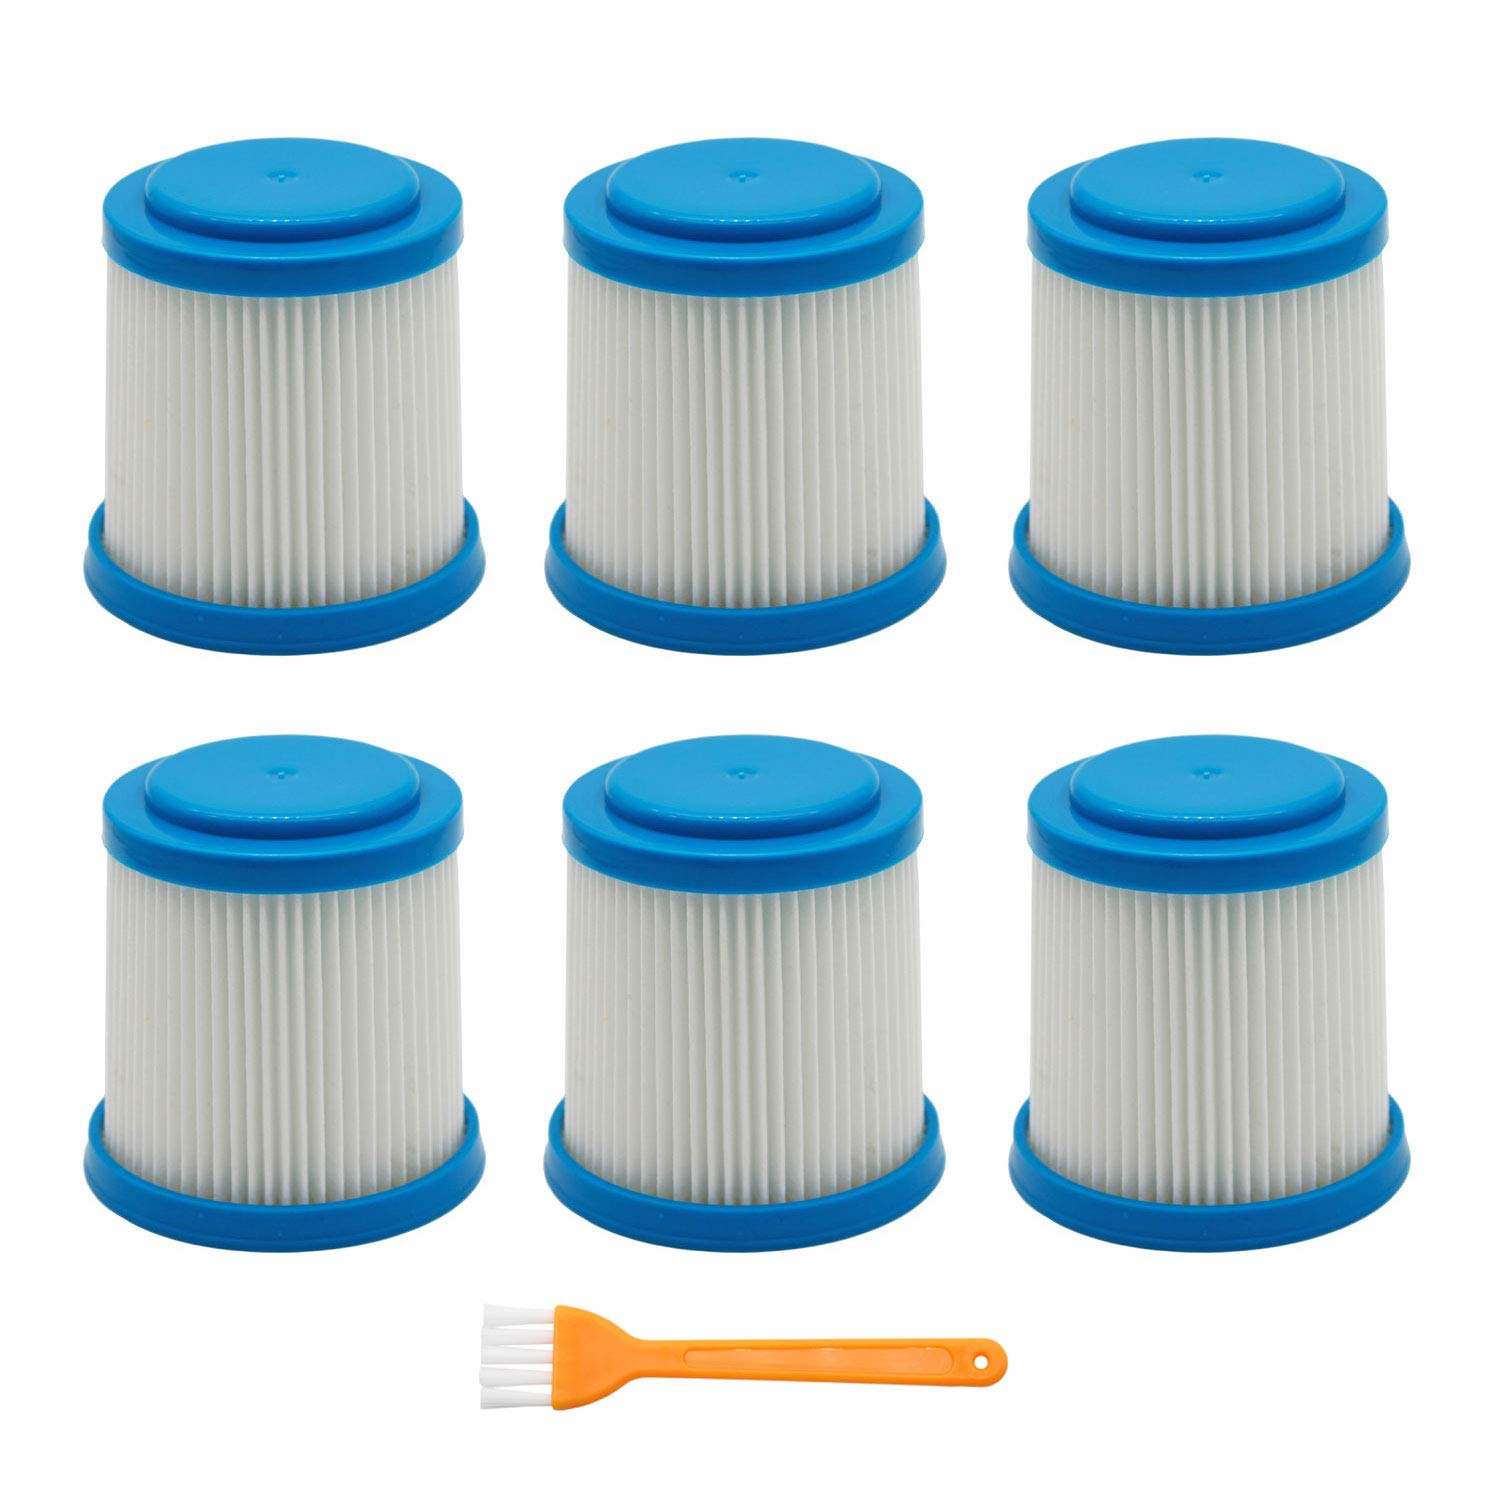 Lemige 6 Packs VPF20 Replacement Filters for Black and Decker Smartech Pet Lithium 2-in-1 Cordless Stick Vacuum by Lemige